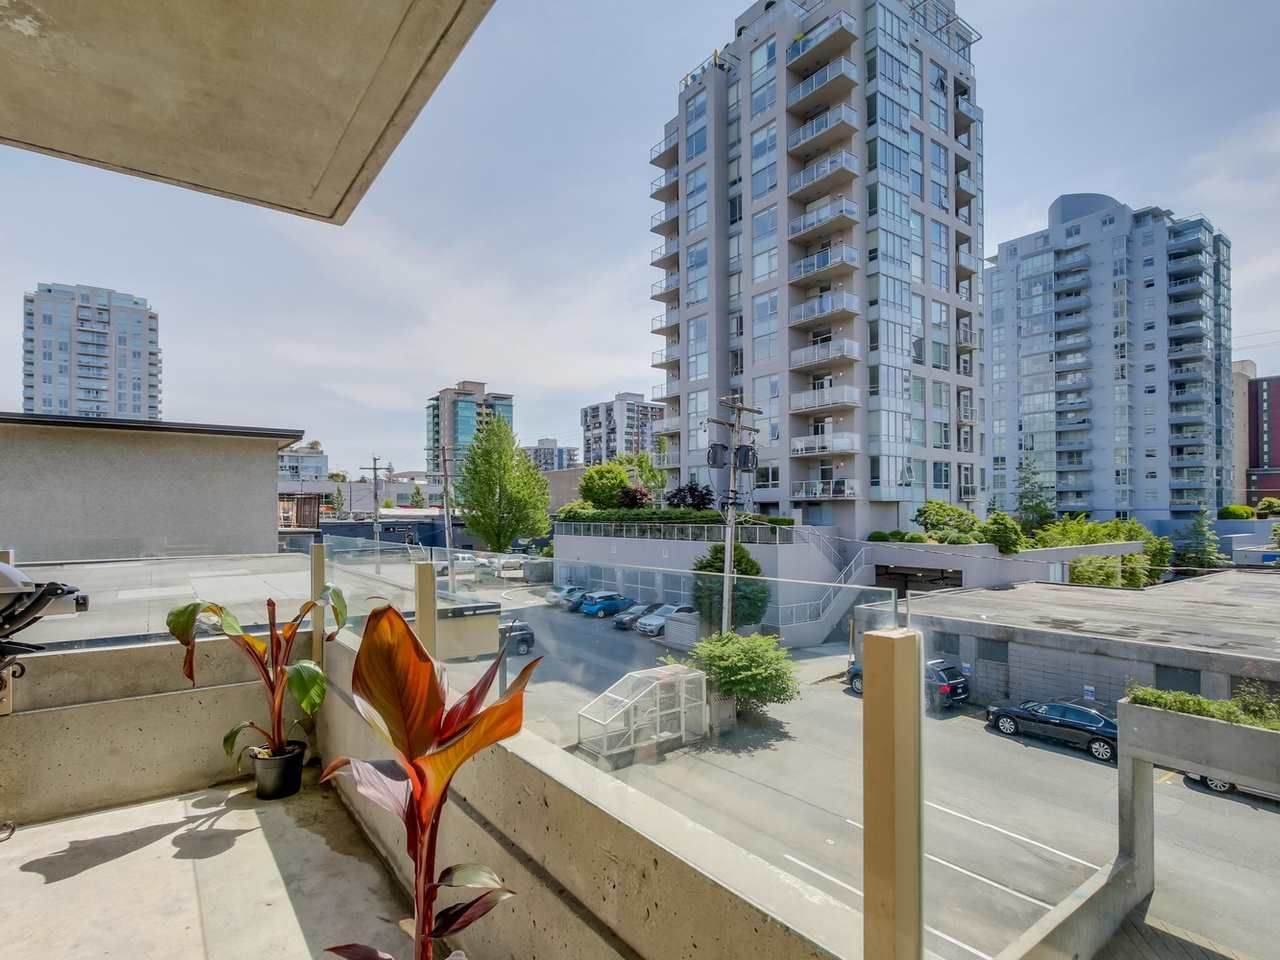 """Photo 5: Photos: 304 137 W 17 Street in North Vancouver: Central Lonsdale Condo for sale in """"Westgate"""" : MLS®# R2075830"""